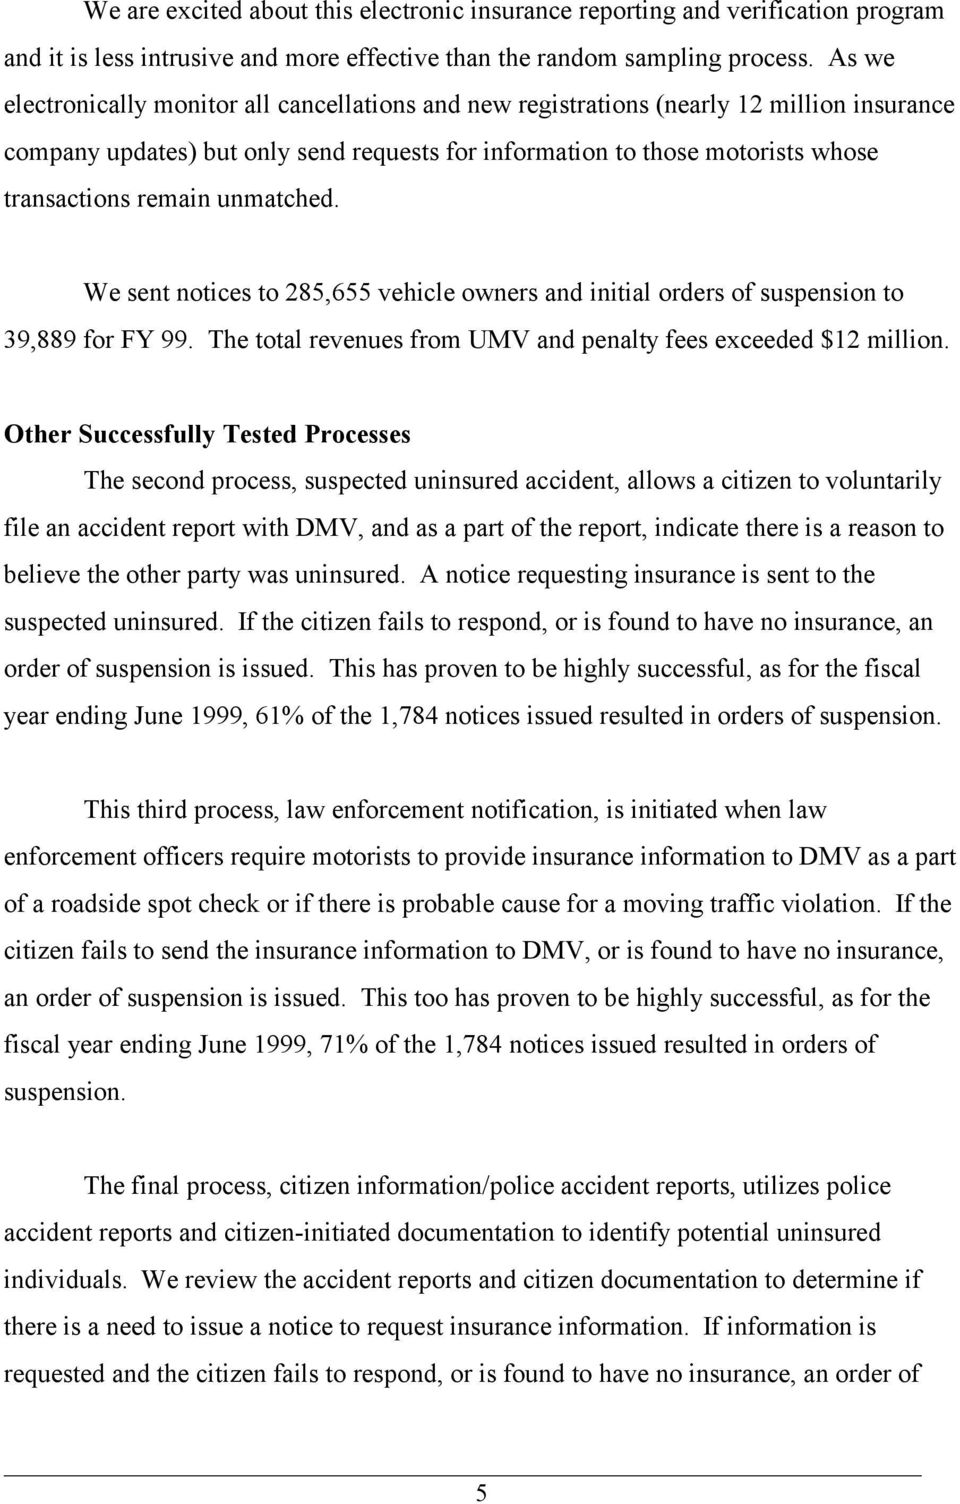 unmatched. We sent notices to 285,655 vehicle owners and initial orders of suspension to 39,889 for FY 99. The total revenues from UMV and penalty fees exceeded $12 million.